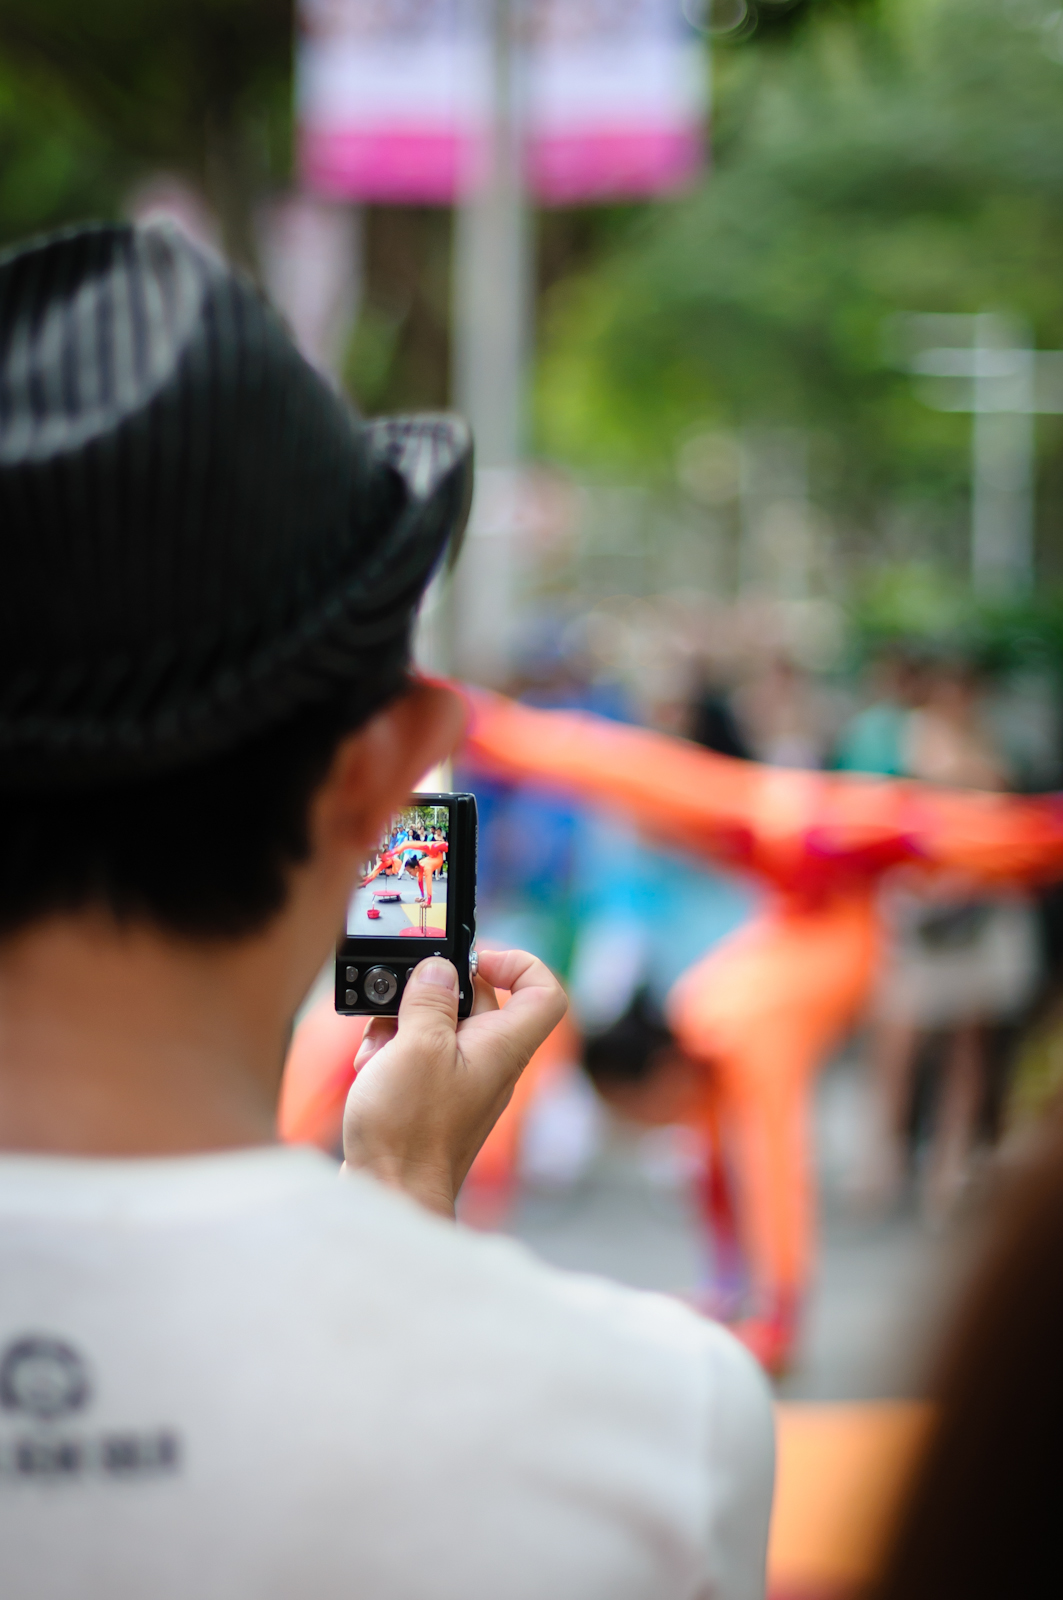 Street photography - Man taking a photo of a street performer